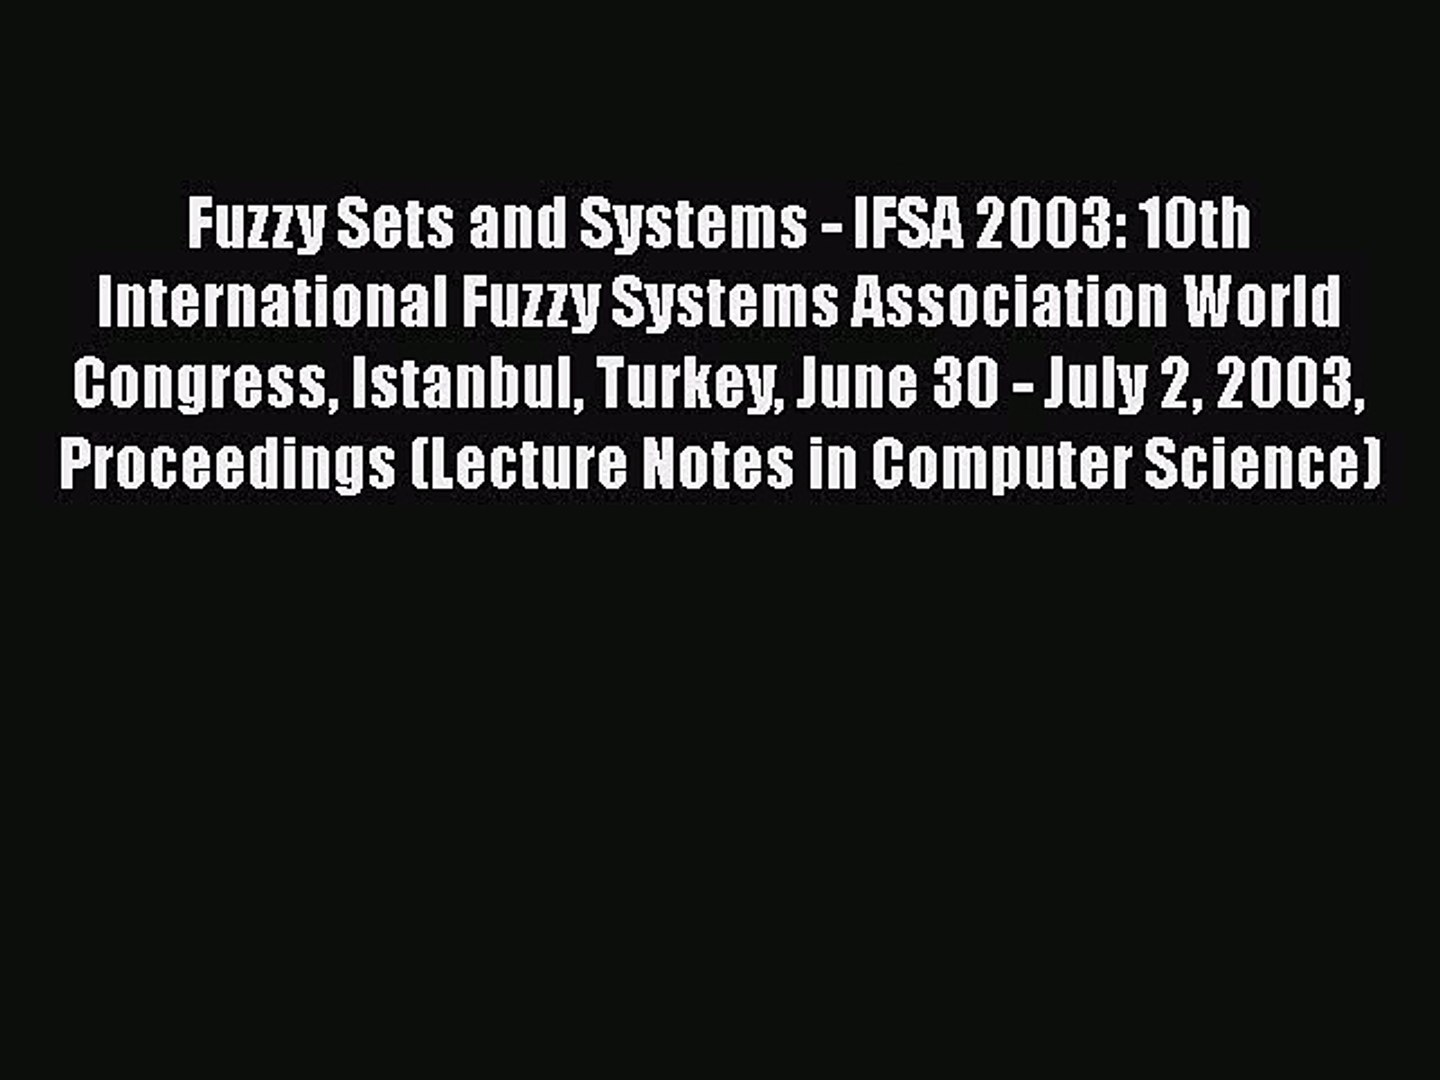 [PDF] Fuzzy Sets and Systems - IFSA 2003: 10th International Fuzzy Systems Association World